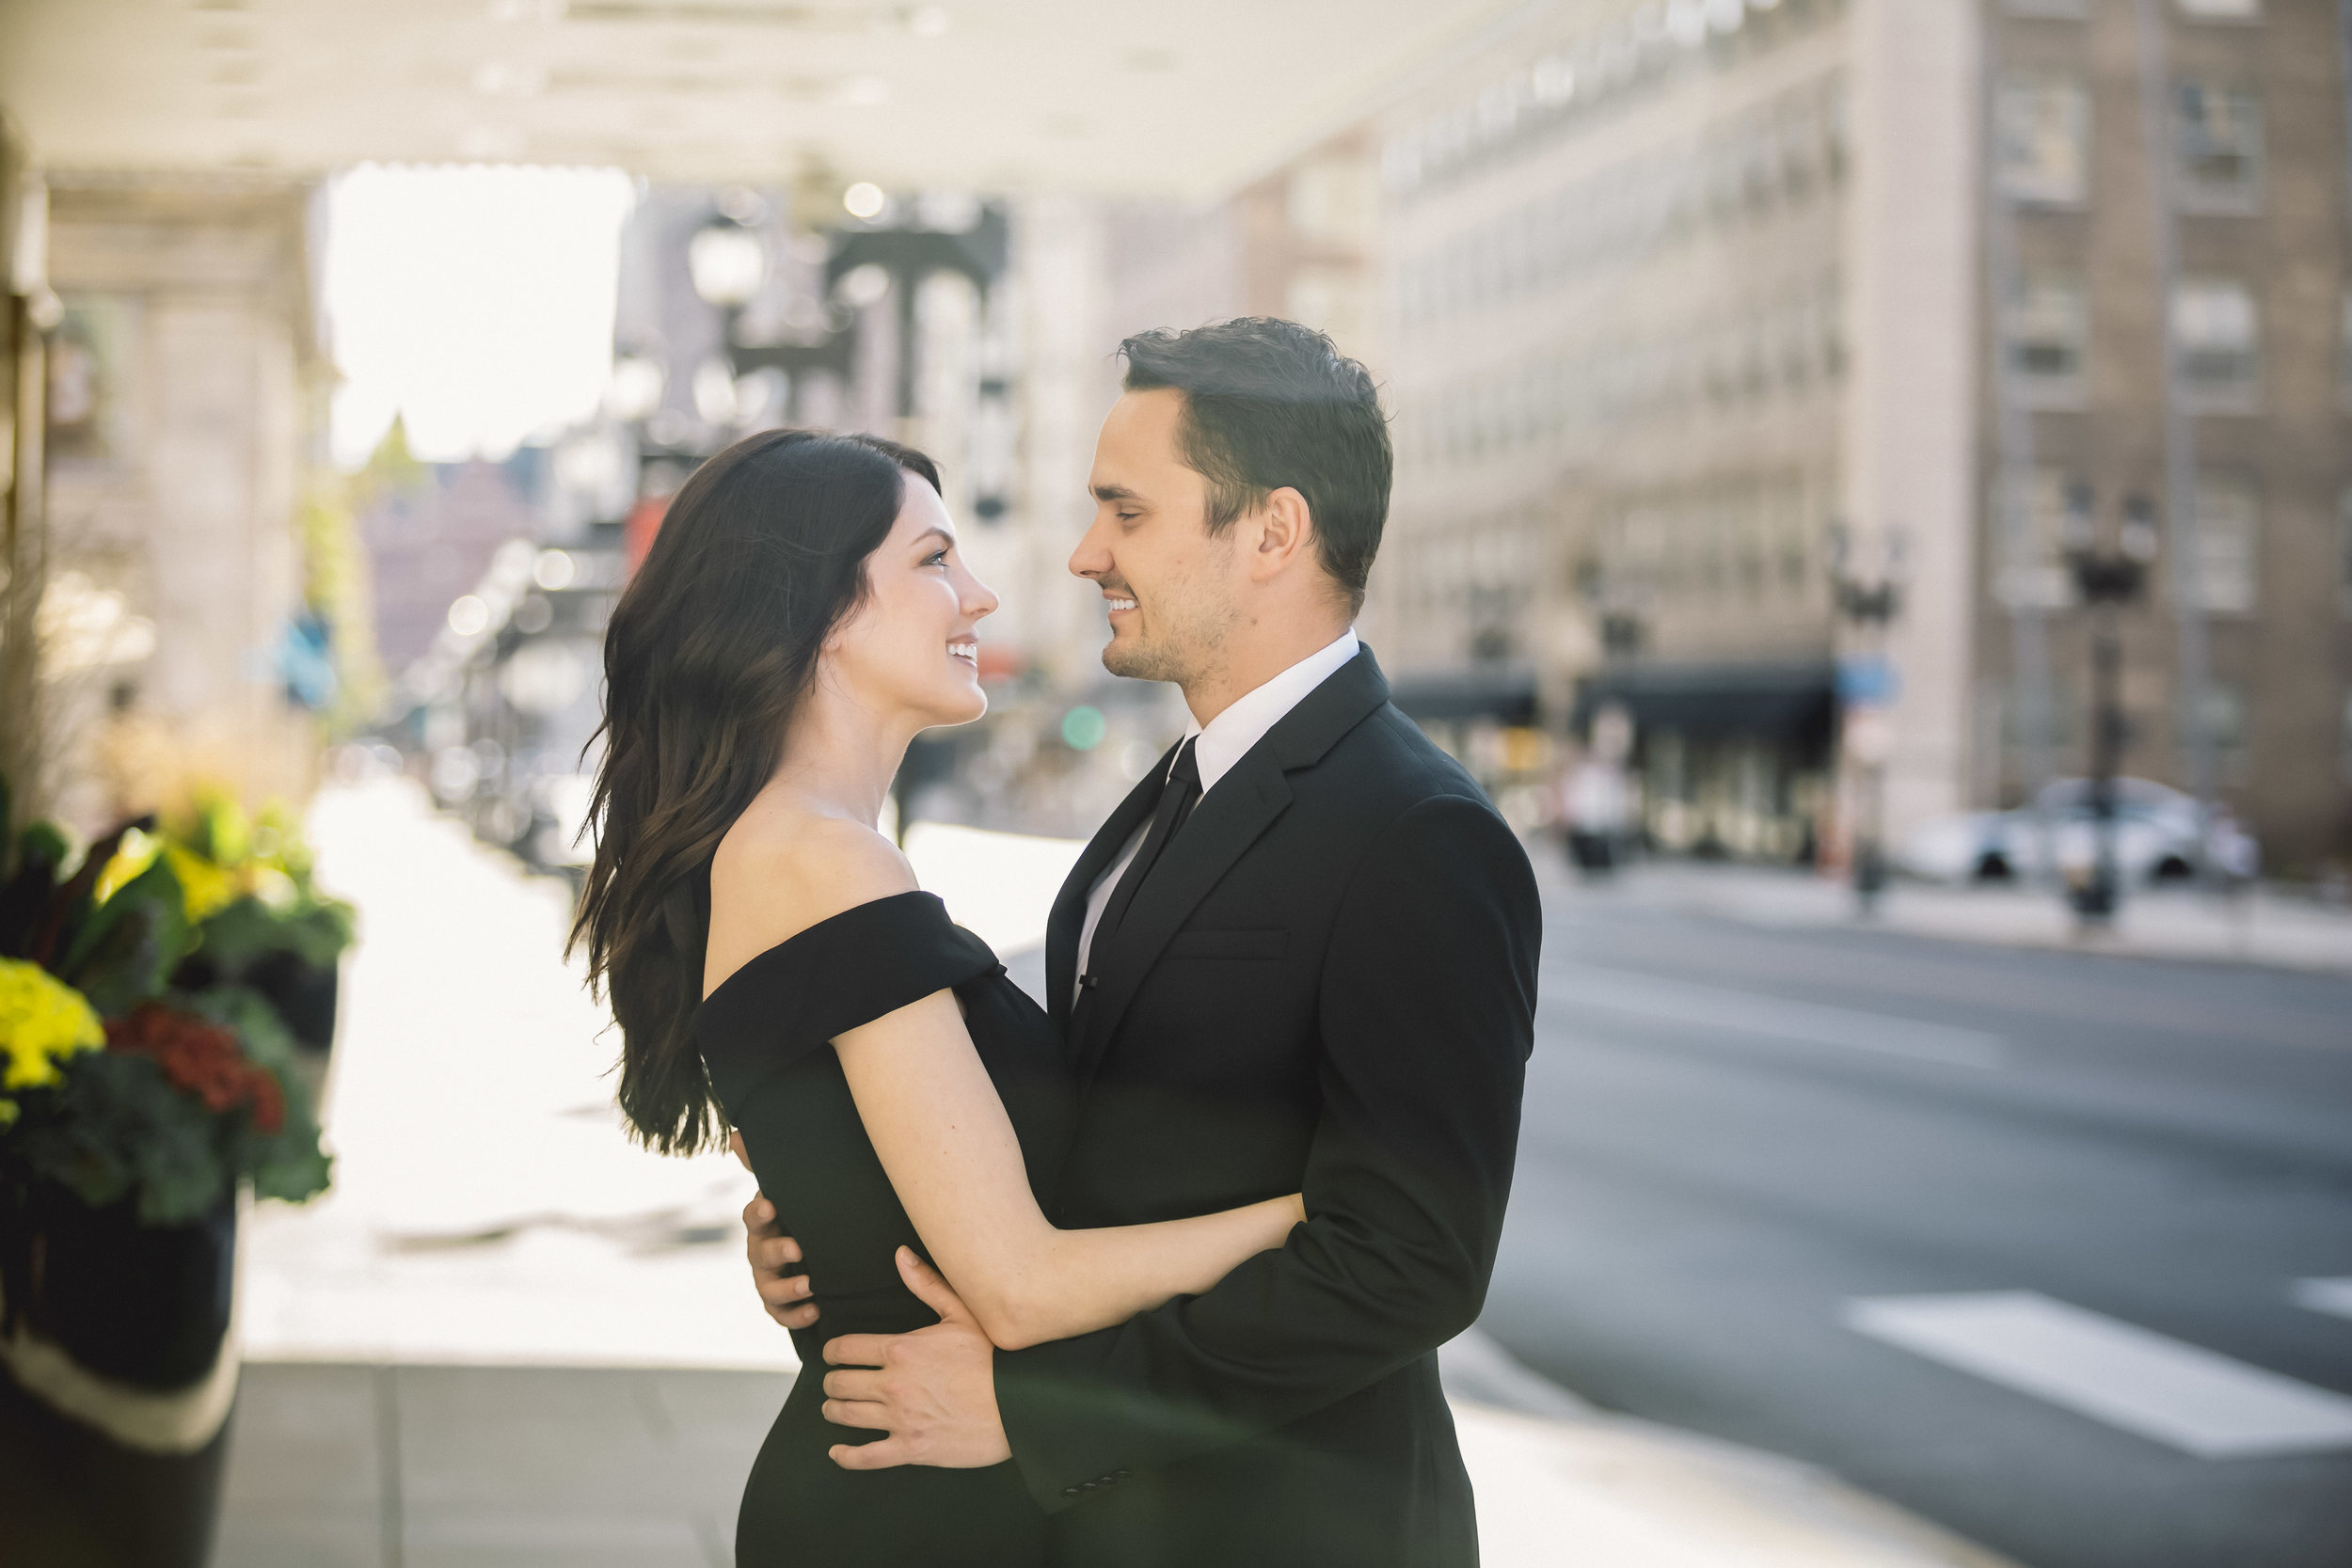 Rebecca_K_Clark_Photography_Engagement_Gallery_Web-29.JPG